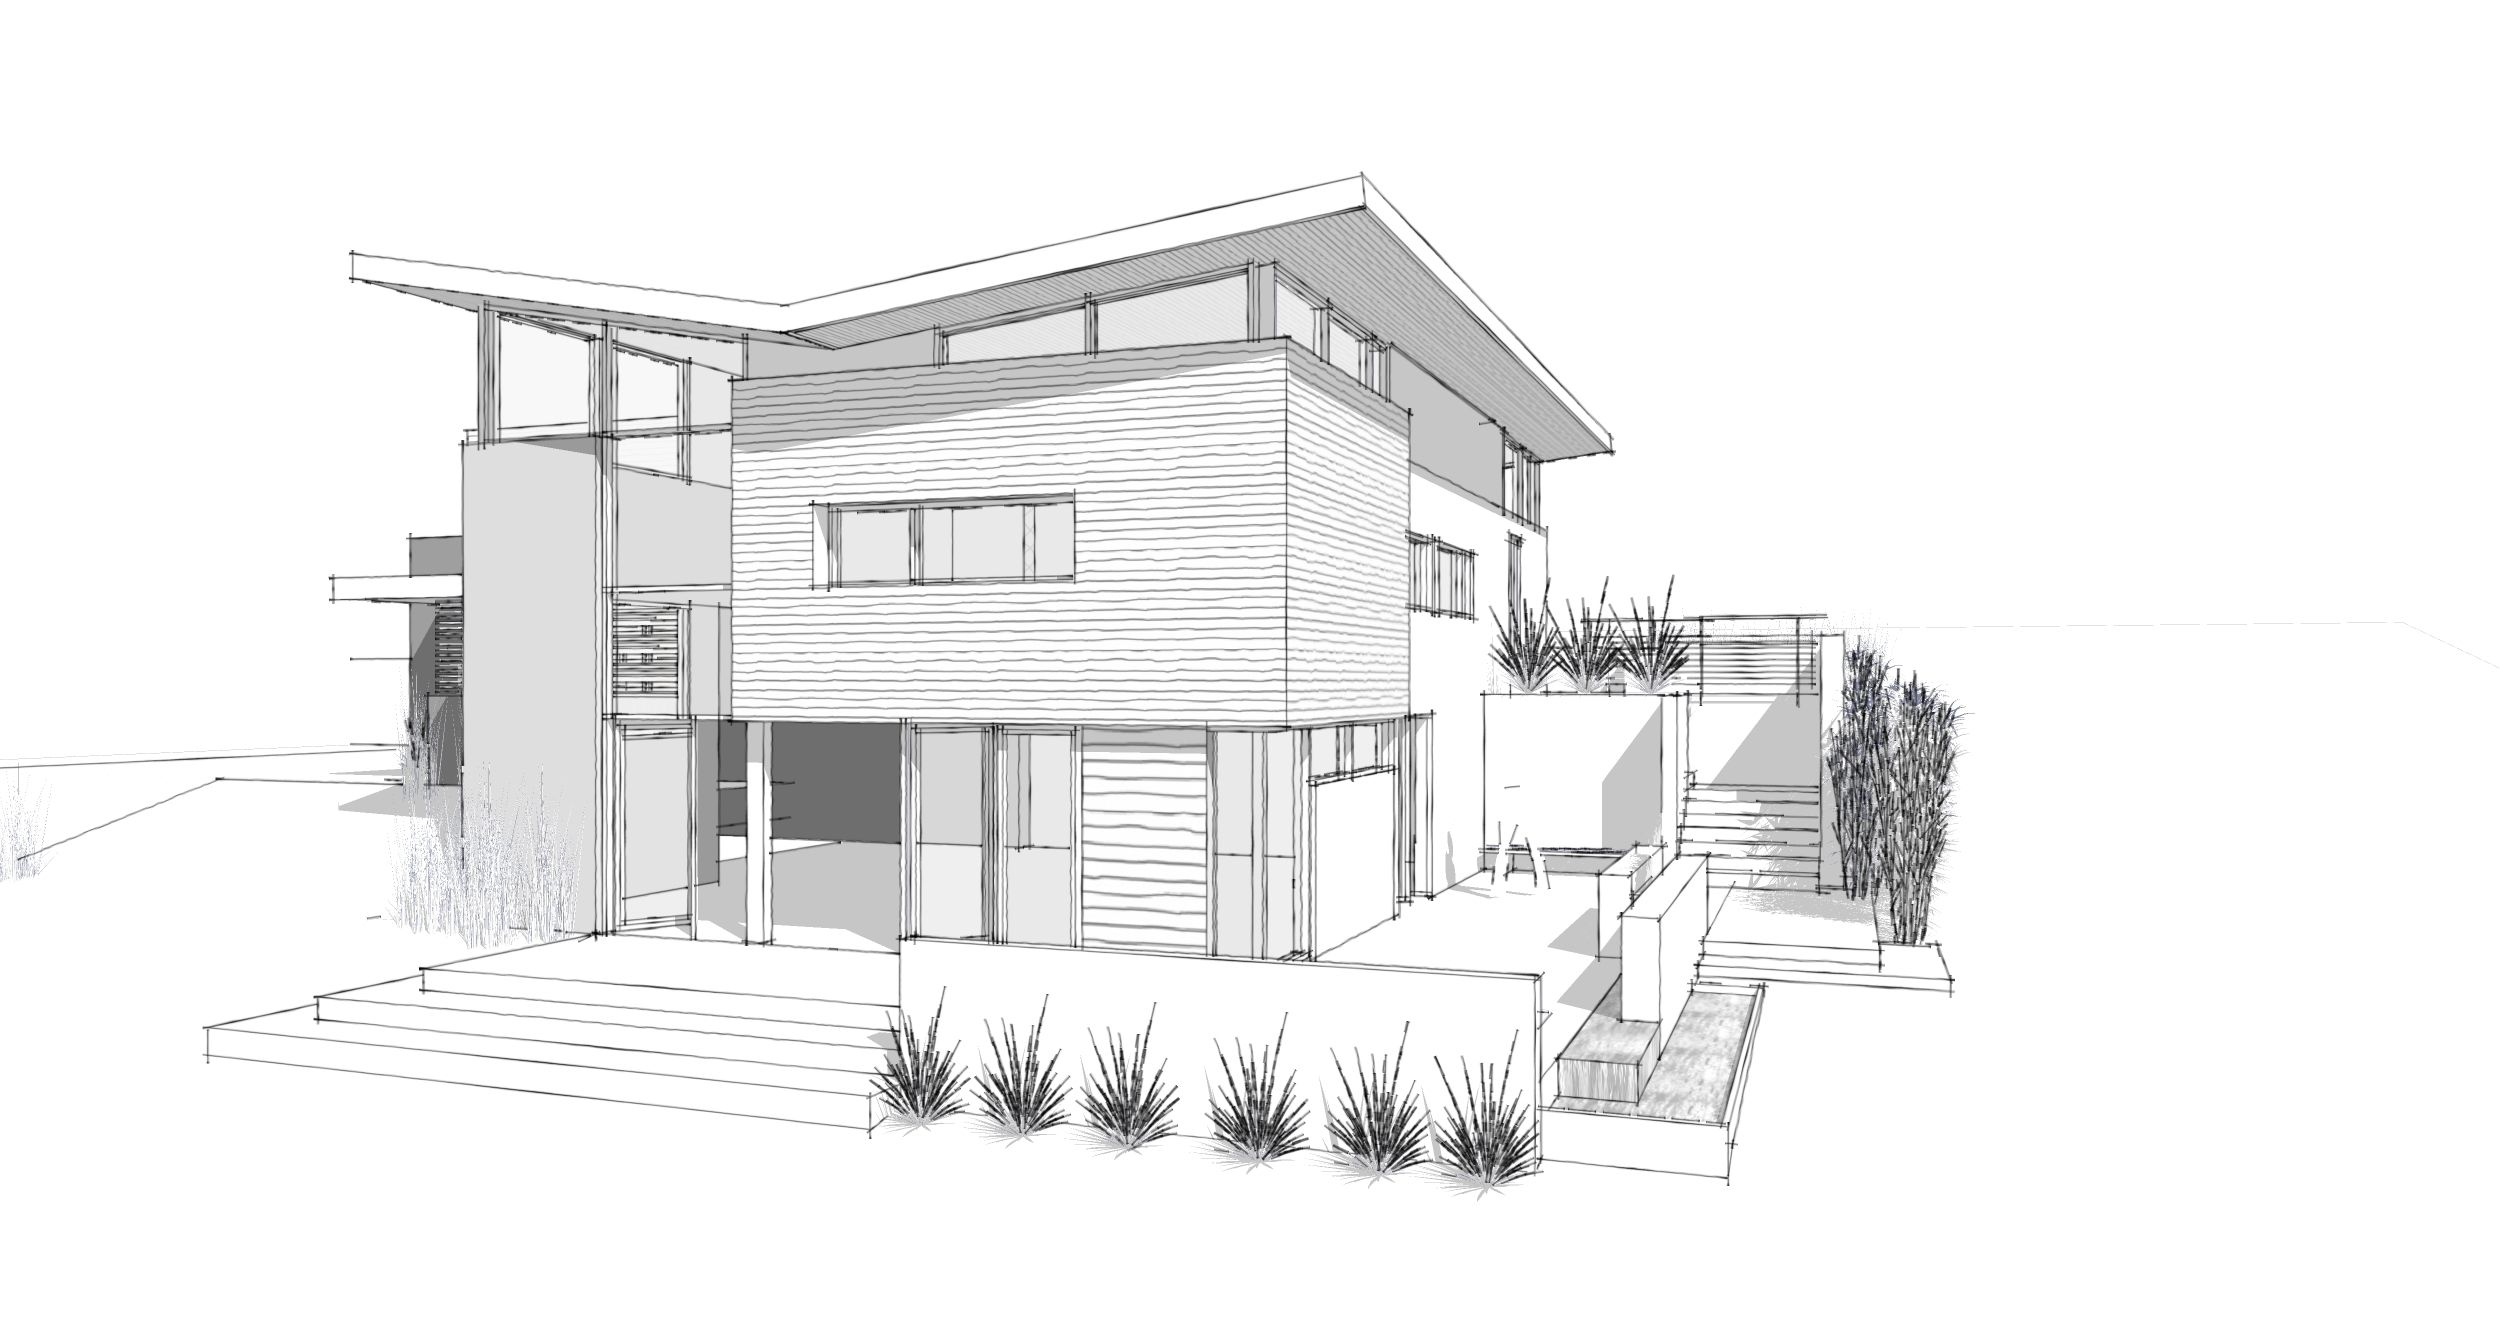 Modern home architecture sketches design ideas 13435 for Architecture design house plans 3d